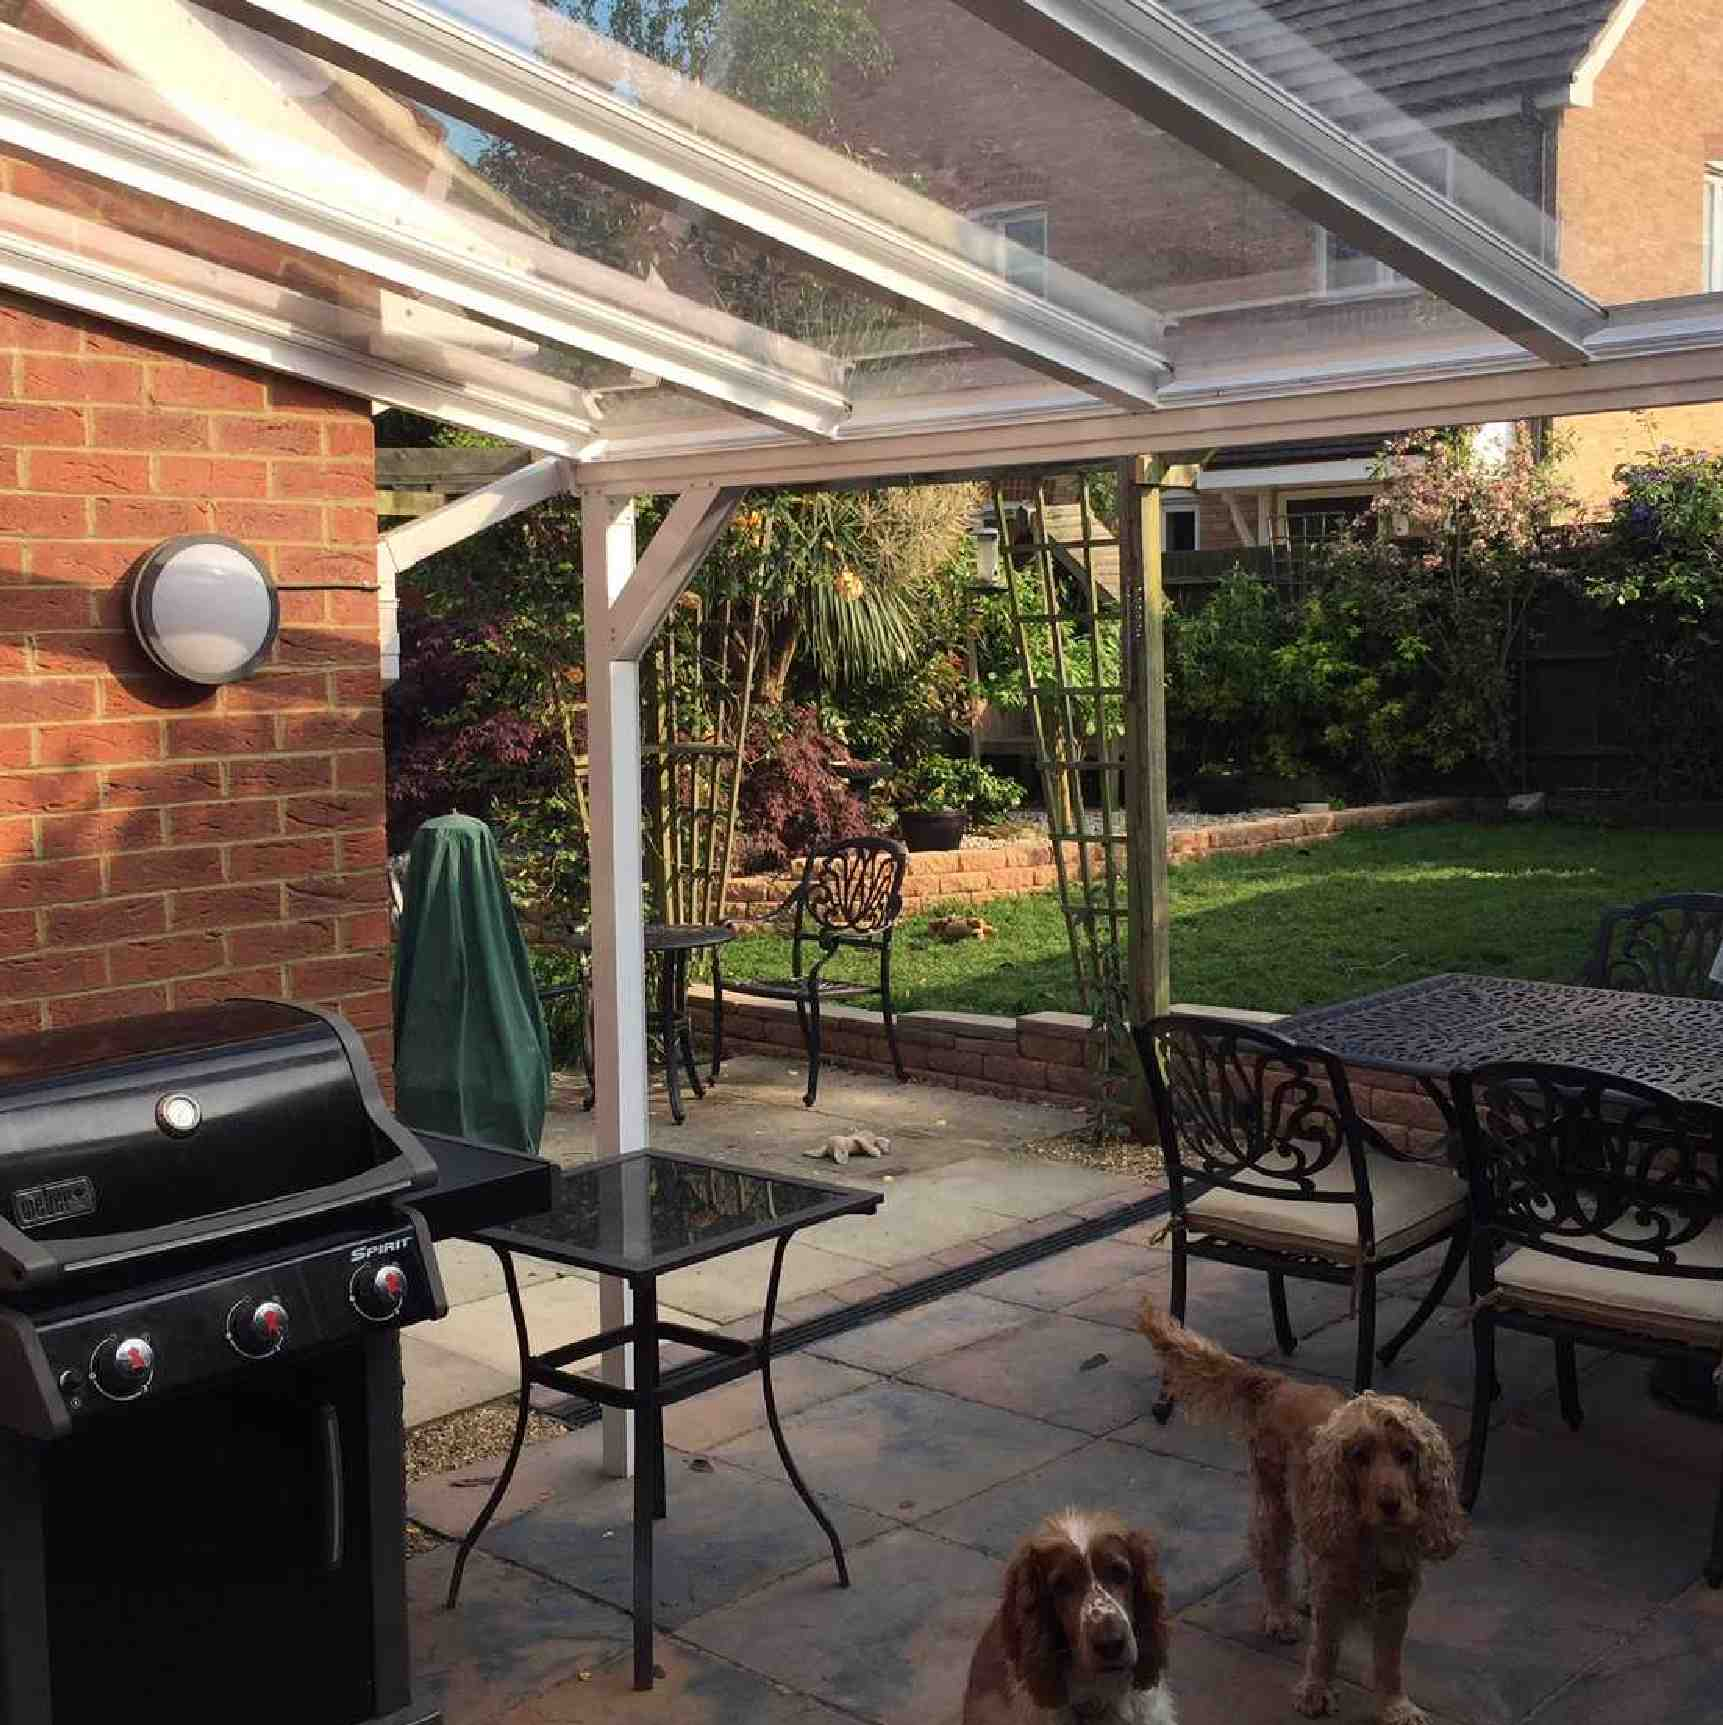 Omega Verandah with 16mm Polycarbonate Glazing - 12.0m (W) x 4.5m (P), (5) Supporting Posts